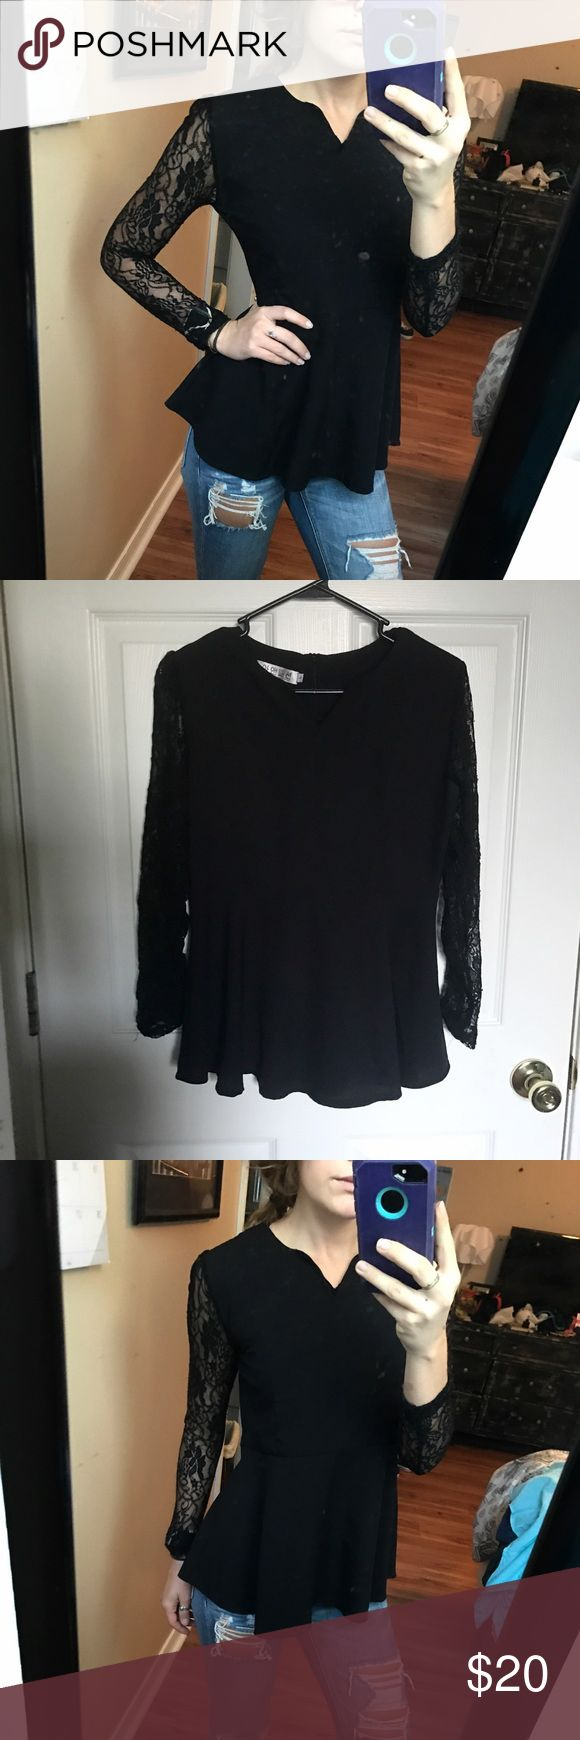 Black peplum top Long sleeve lace peplum fit top, size medium!   ‪No holes or stains.‬ ‪No trades.‬ ‪Bundle for discounts! ‬ ‪Or shoot me an offer!!‬ Tops Blouses